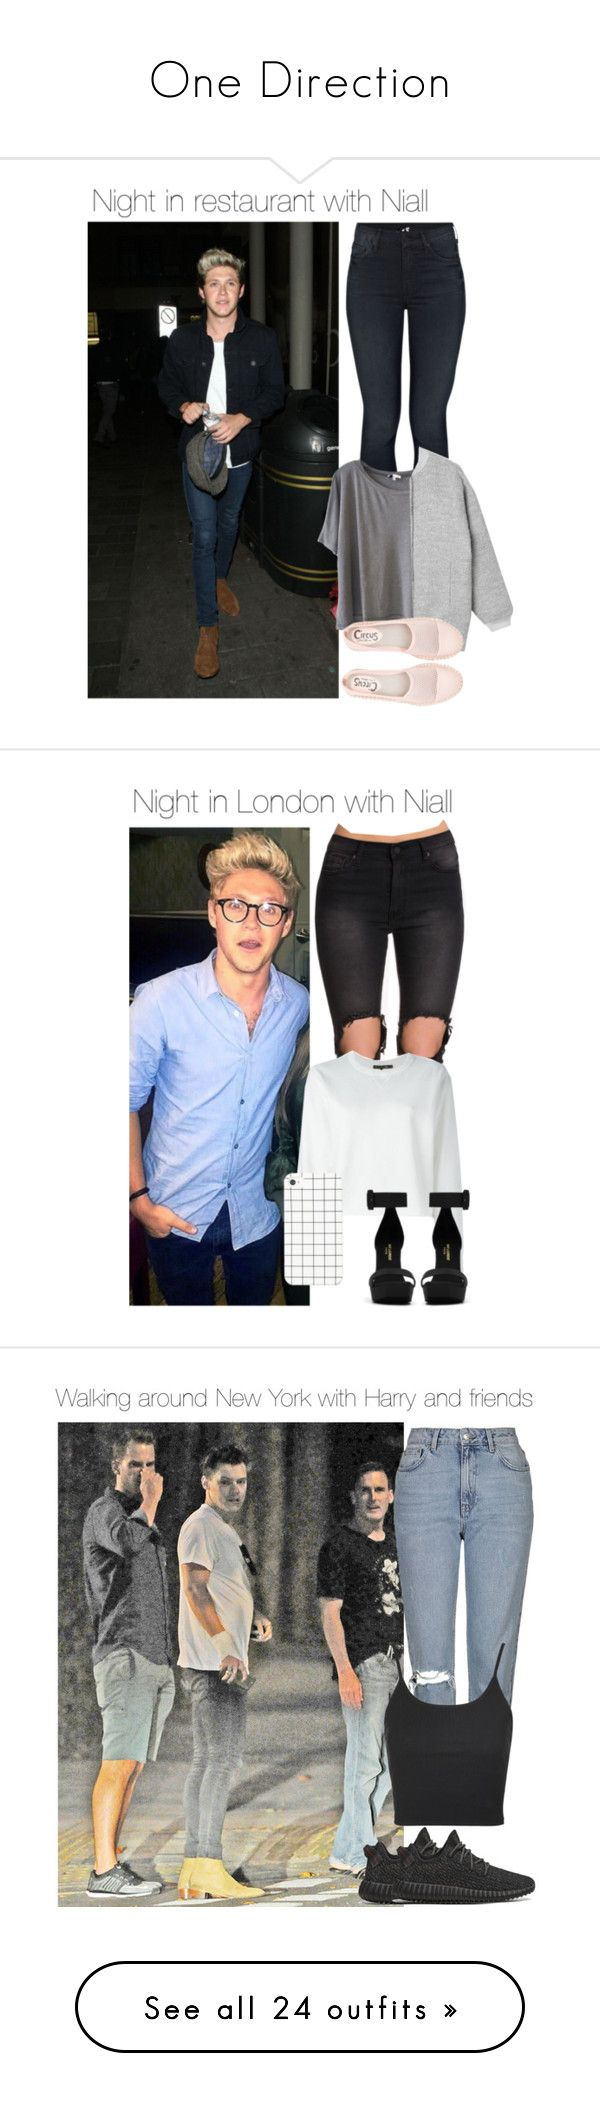 """""""One Direction"""" by bedifferent-y ❤ liked on Polyvore featuring Mother, Clu, Monki, Circus by Sam Edelman, UNIF, rag & bone, Yves Saint Laurent, Topshop, adidas Originals and Payne"""